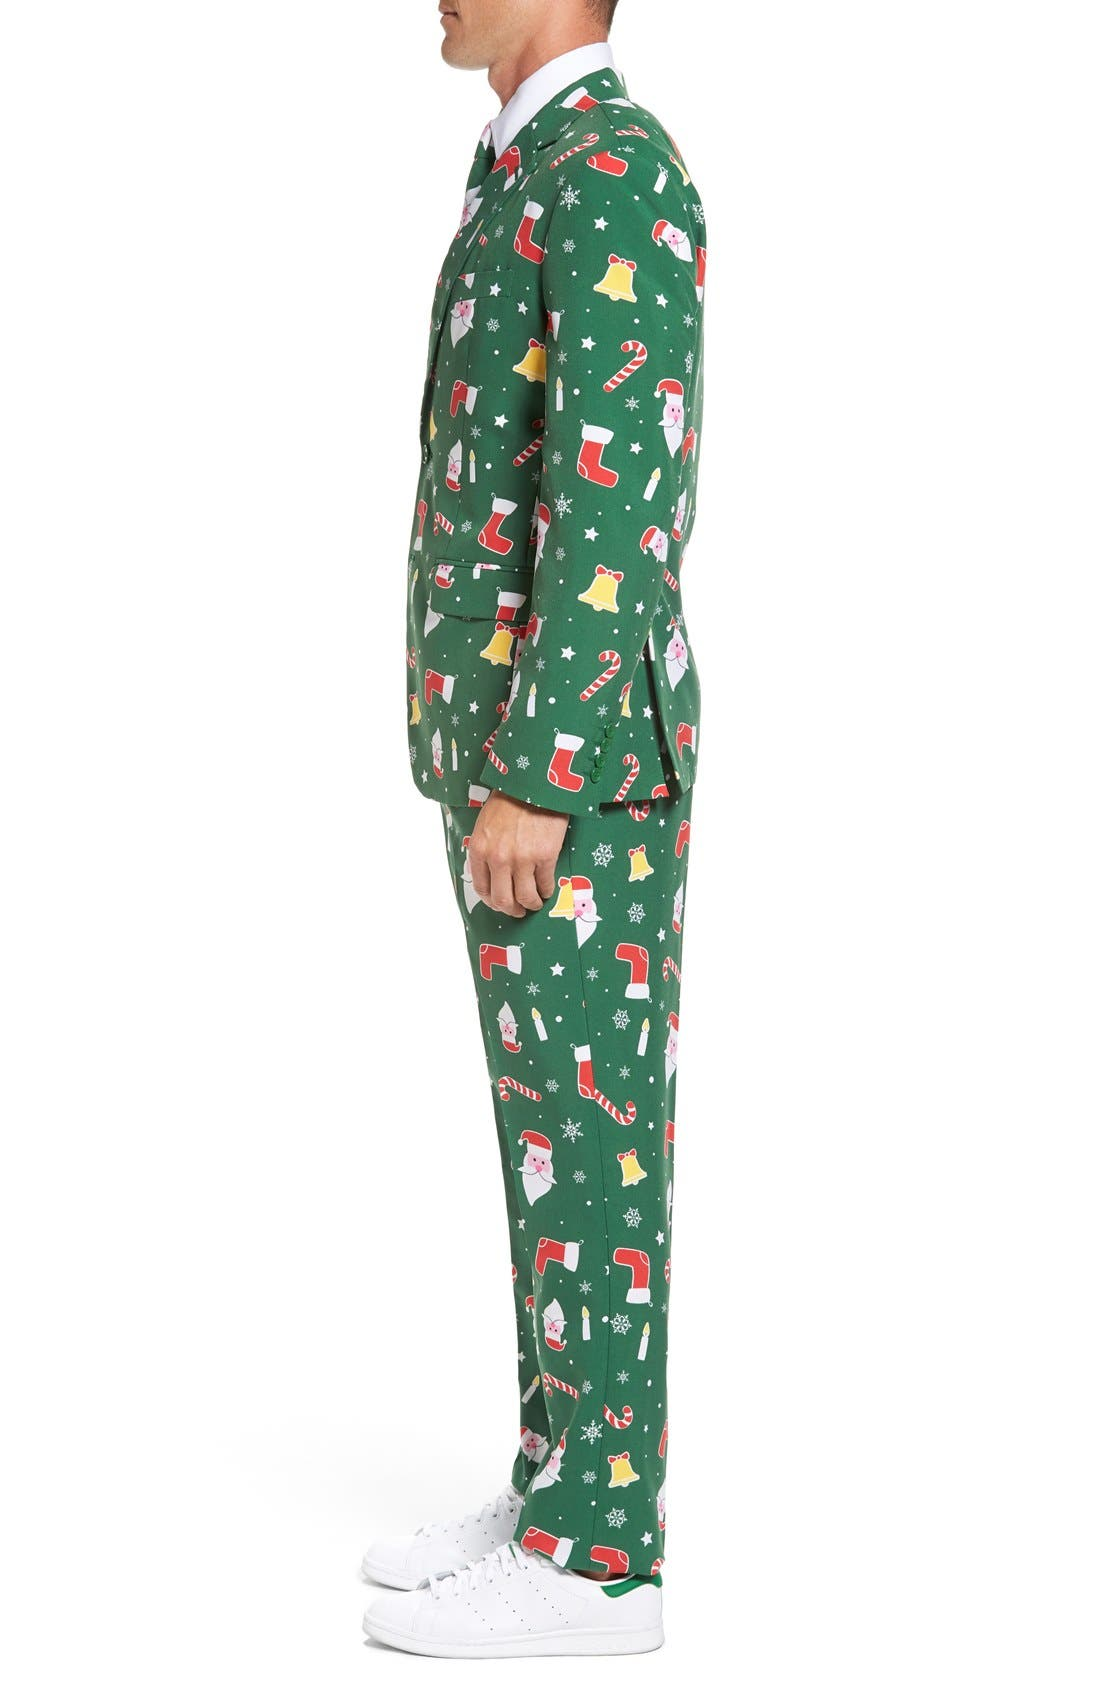 Alternate Image 3  - OppoSuits 'Santaboss' Trim Fit Two-Piece Suit with Tie